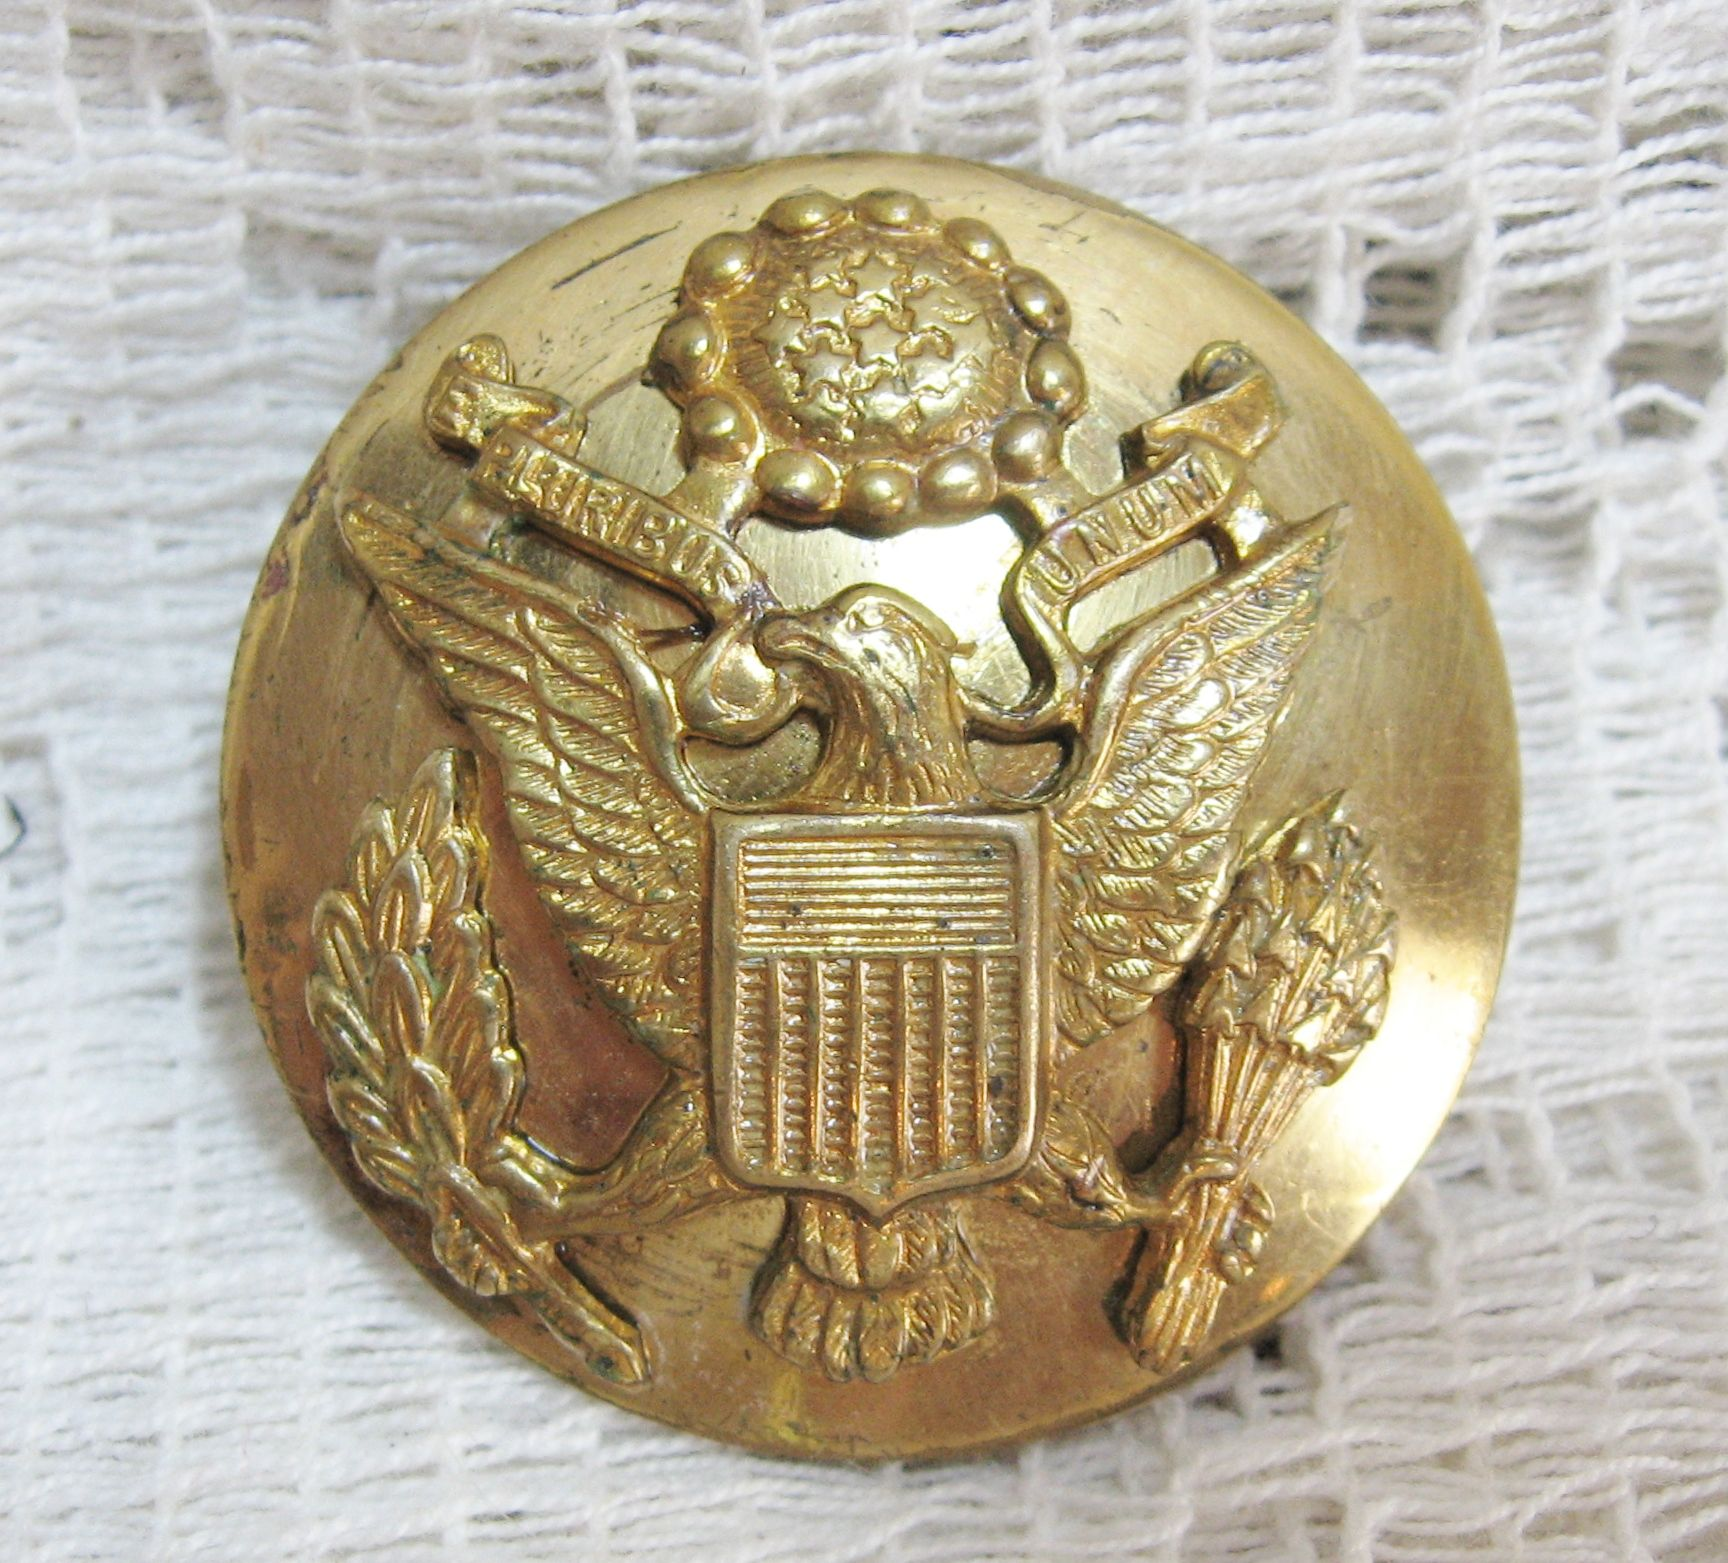 U.S. Military Collectibles I Antique Online